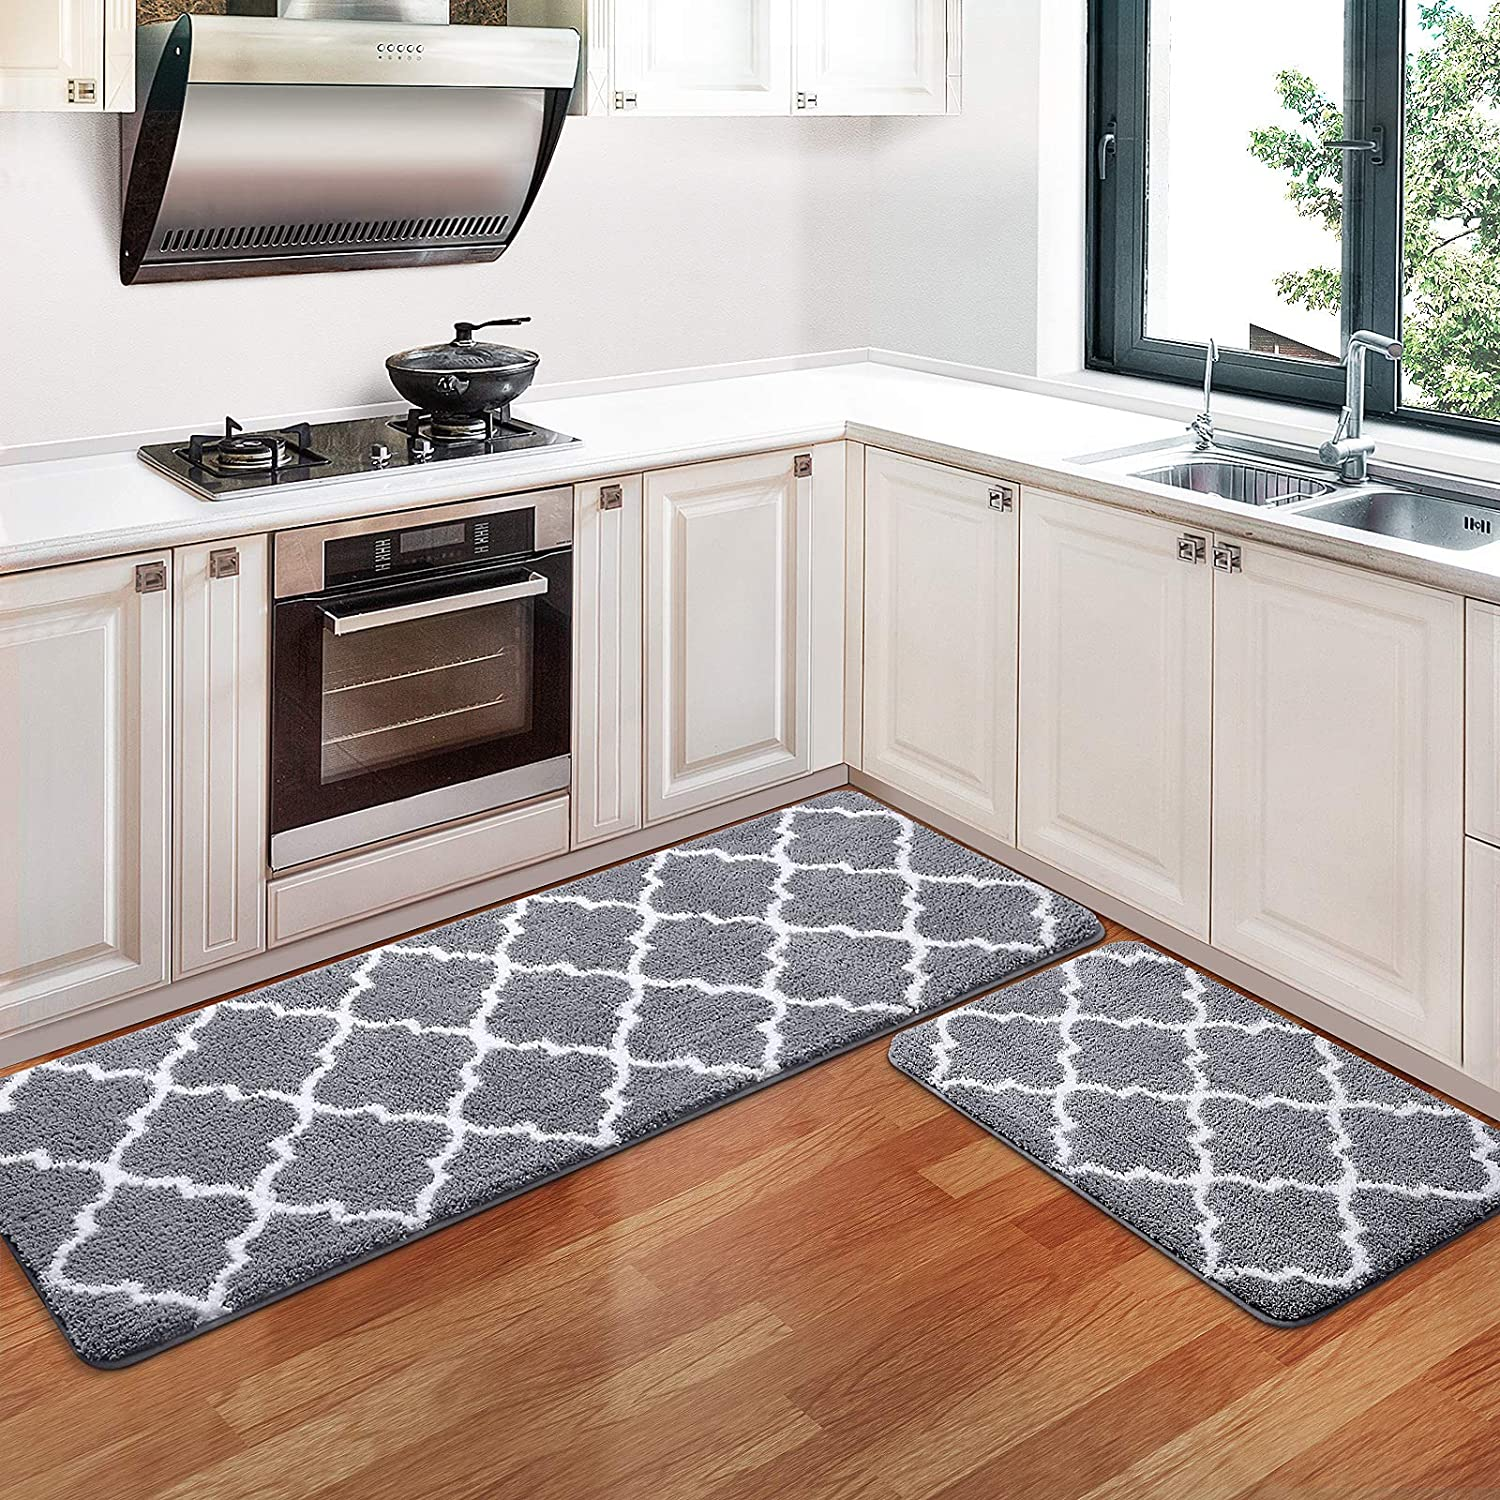 Amazon Com Kmat Kitchen Rugs And Mats 2 Pcs Super Absorbent Microfiber Kitchen Mat Non Slip Machine Washable Runner Carpets For Floor Kitchen Bathroom Sink Office Laundry 17 3 X28 17 3 X47 Grey Kitchen Dining